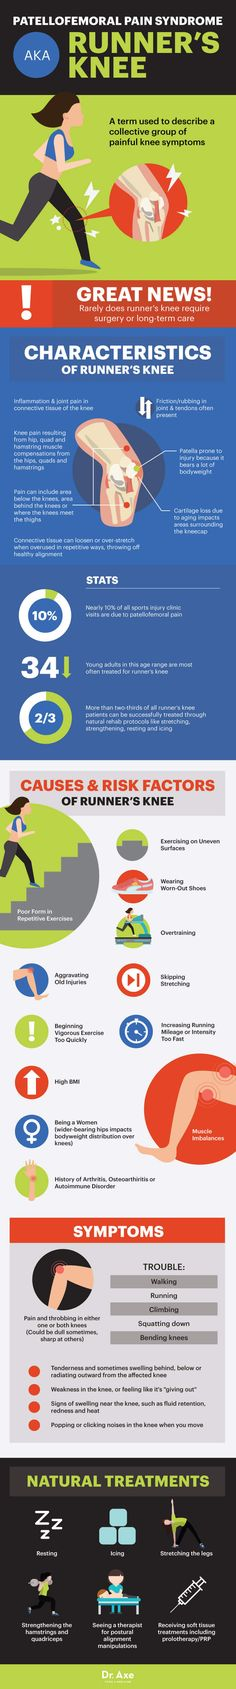 Runner's knee - Dr. Axe  http://www.draxe.com #health #holistic #natural